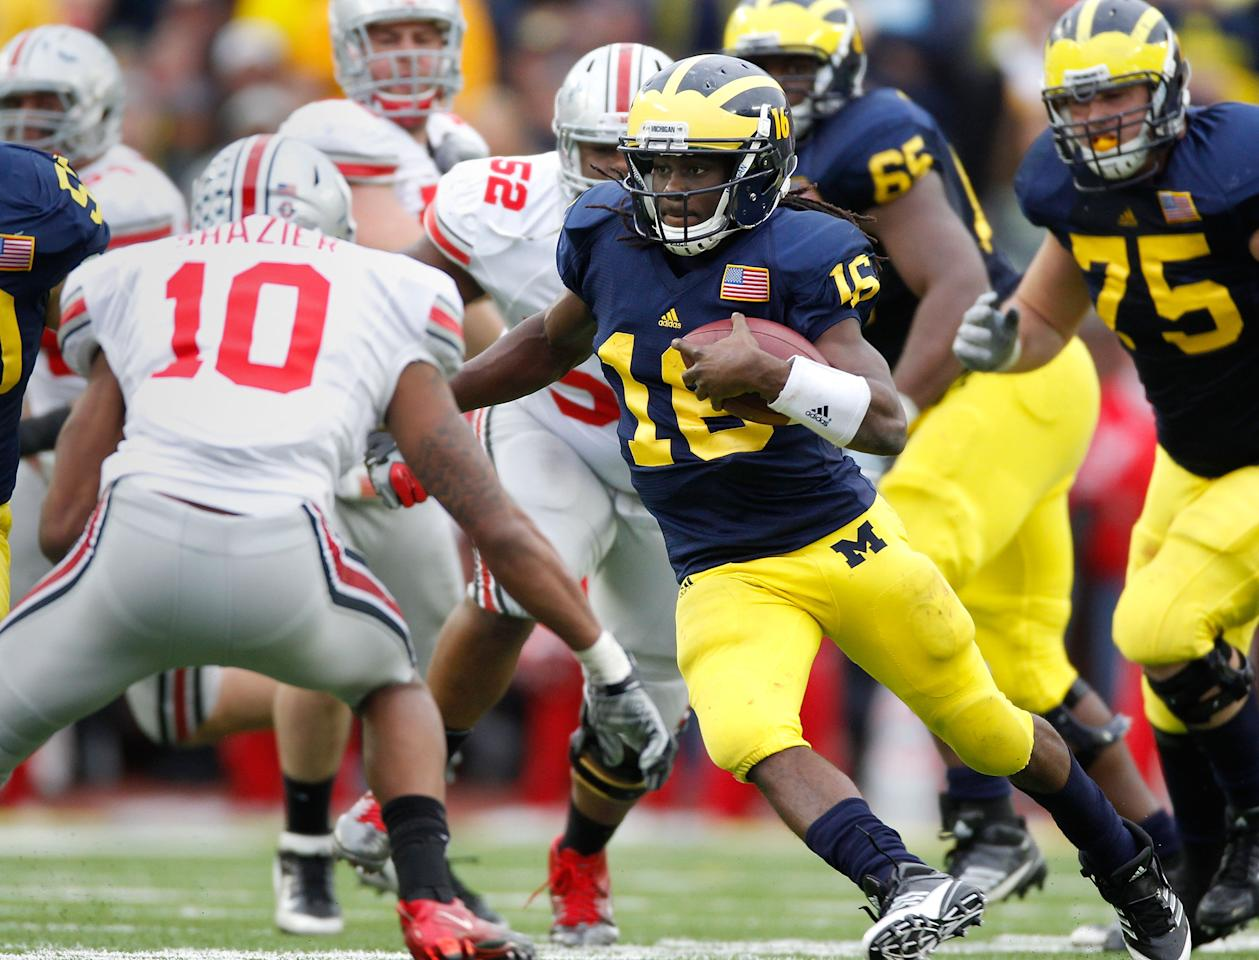 ANN ARBOR, MI - NOVEMBER 26: Denard Robinson #16 of the Michigan Wolverines tries to get around the tackle of Ryan Shazier #10 of the Ohio State Buckeyes at Michigan Stadium on November 26, 2011 in Ann Arbor, Michigan. Michigan won the game 40-34. (Photo by Gregory Shamus/Getty Images)